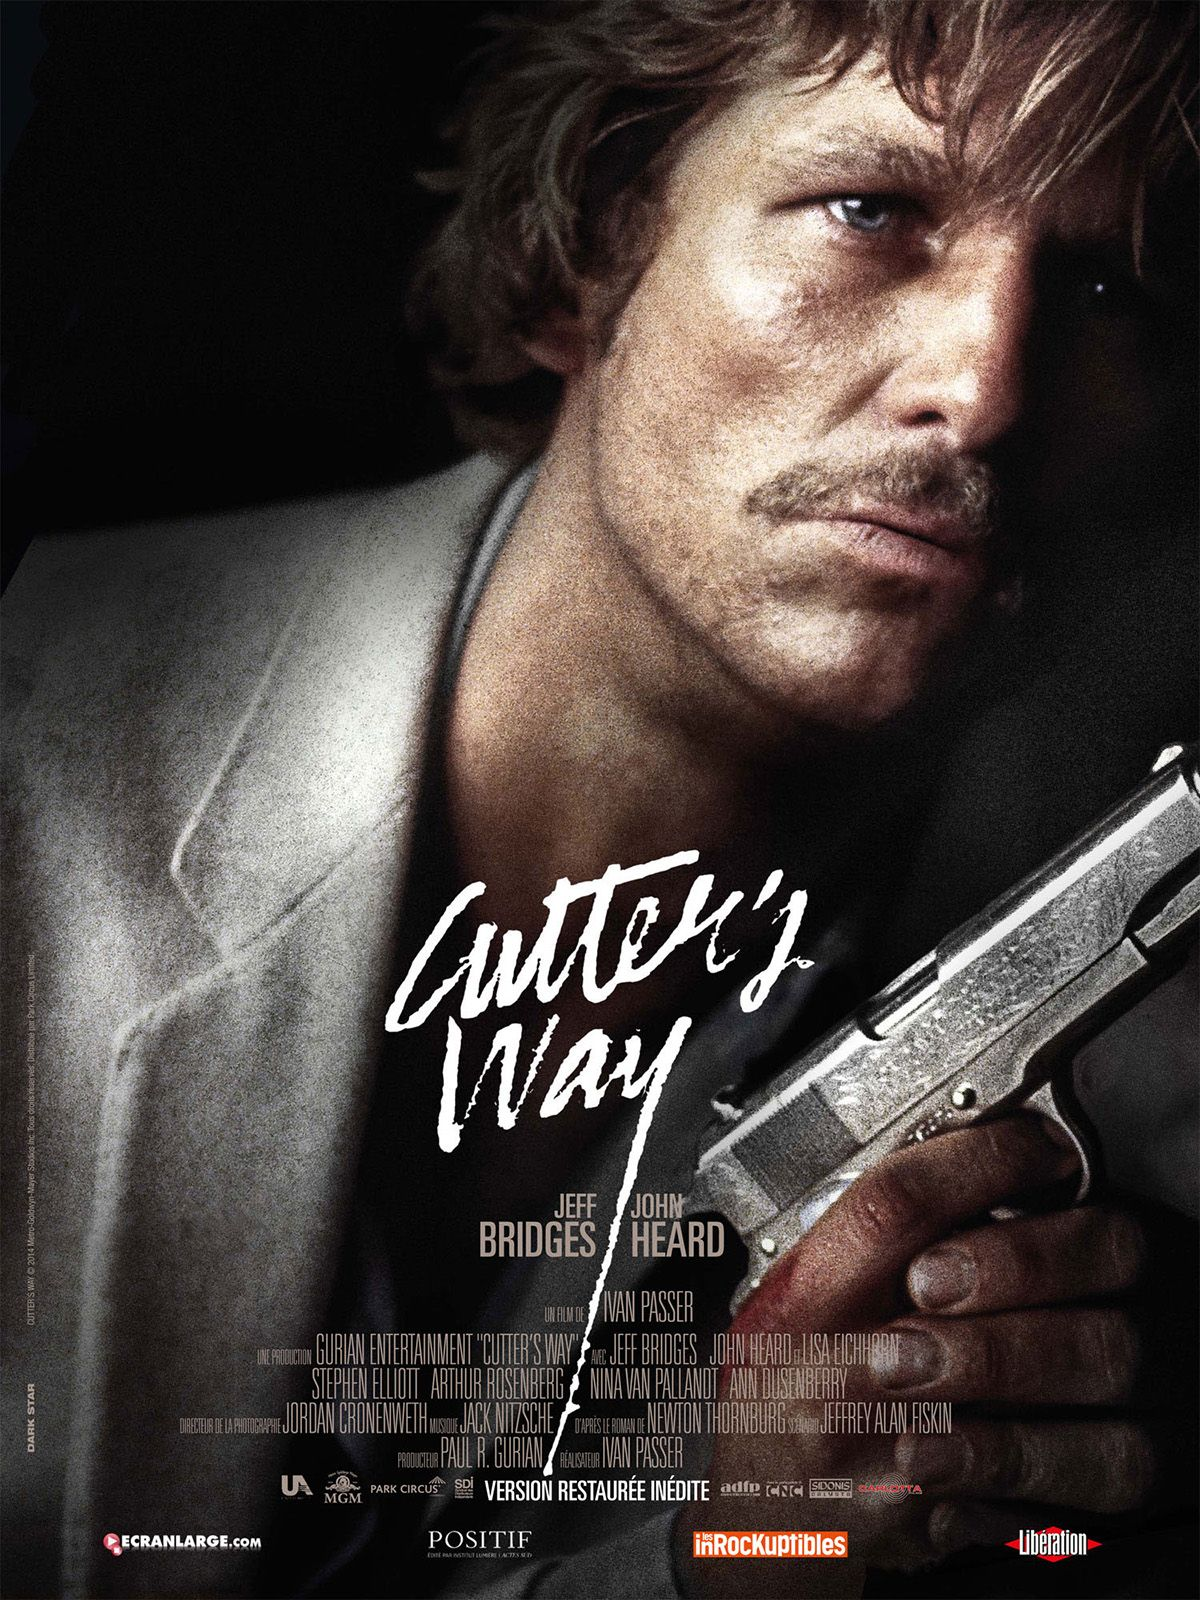 Cutter's way • Ivan Passer Jeff johns, Film, Mgm